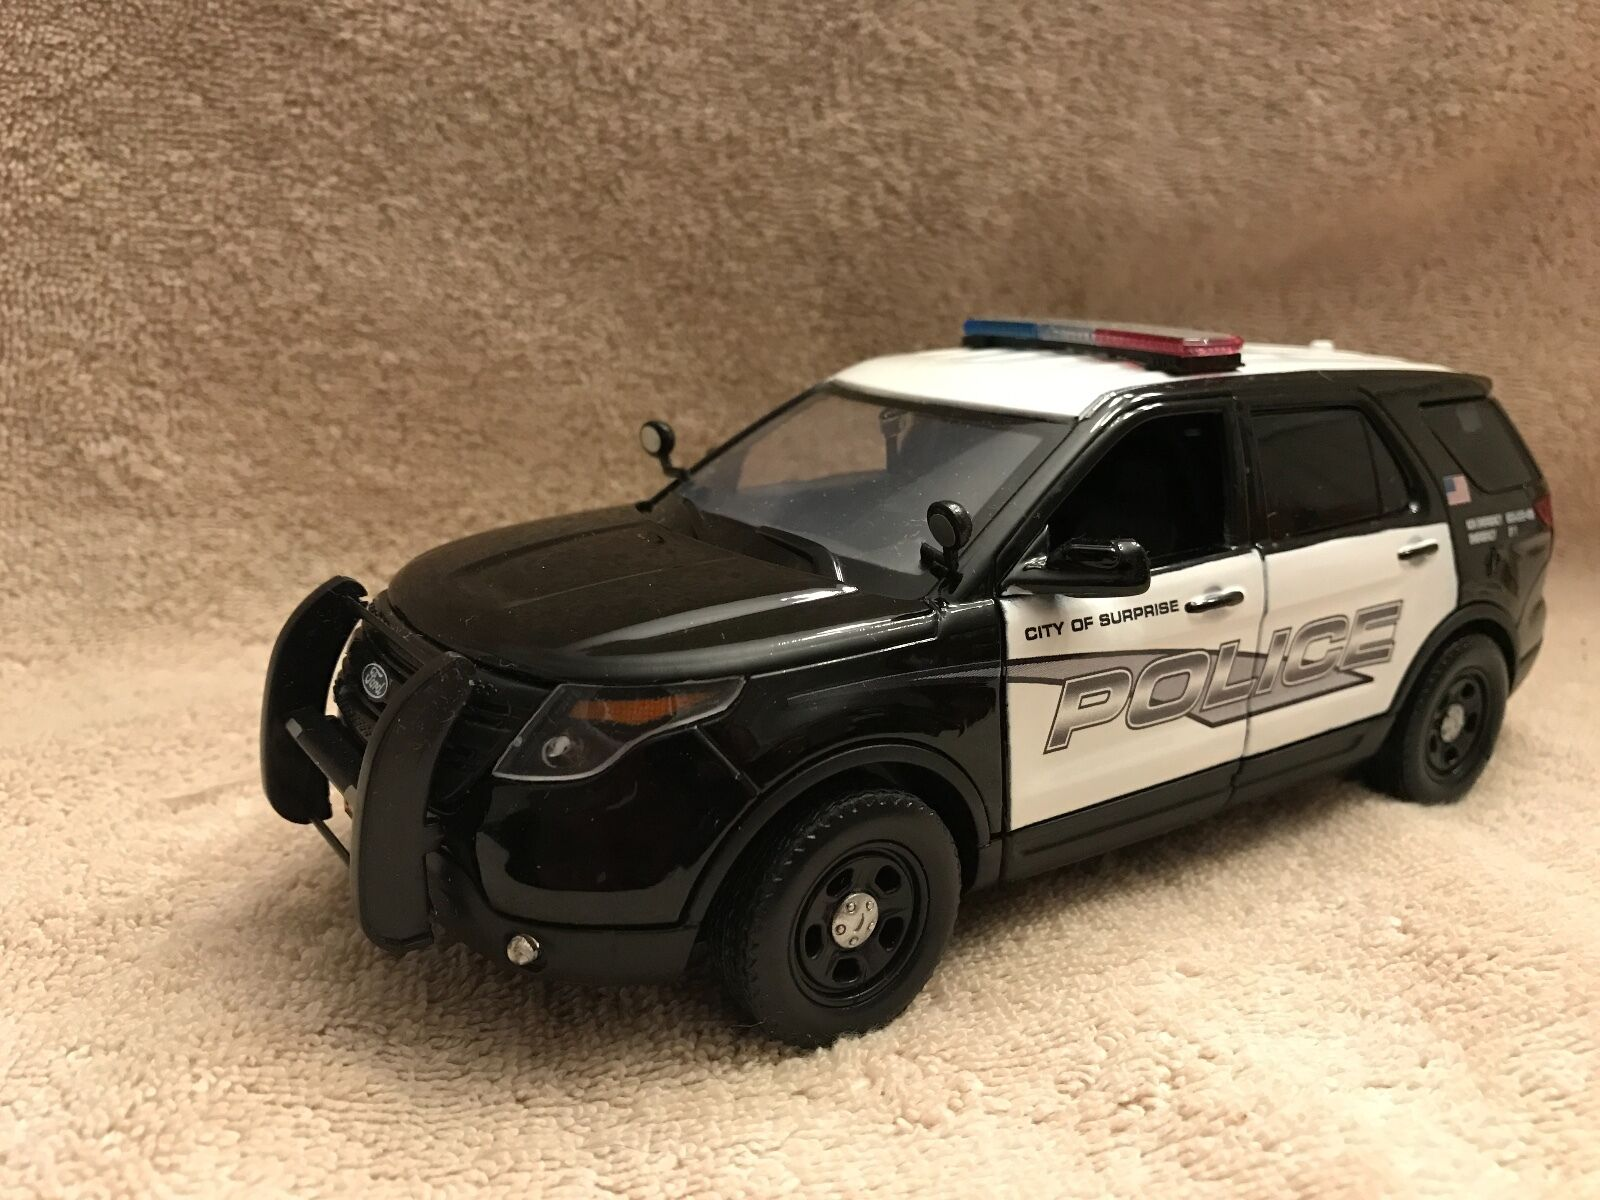 1 24 SCALE SUPRISE ARIZONA PD FD EXPLORER  UT MODEL WITH WORKING LIGHTS SIREN